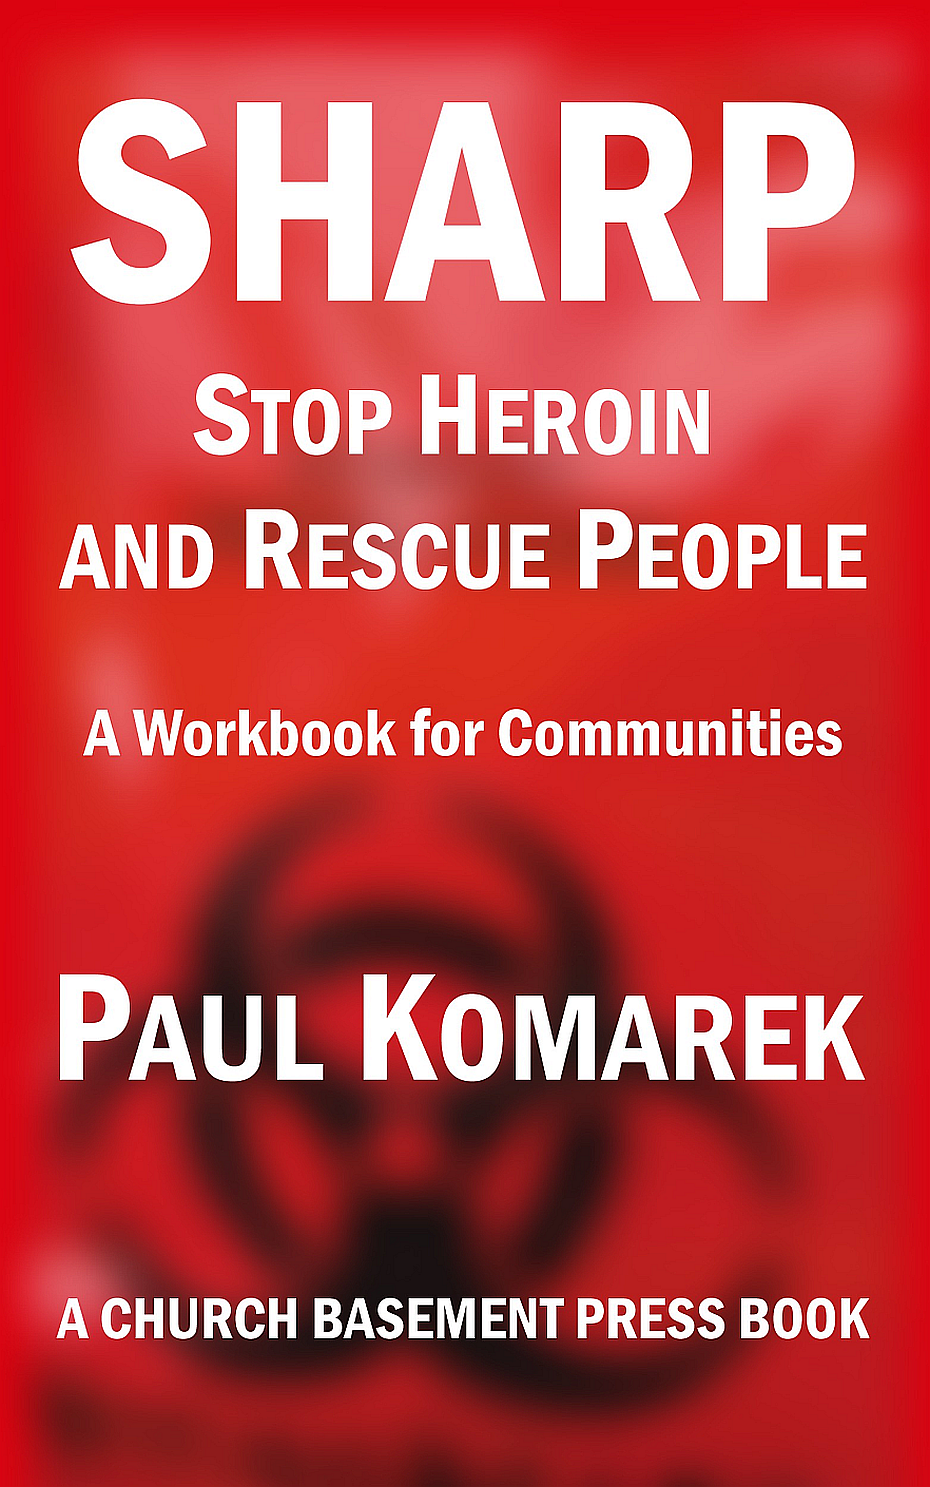 SHARP Stop Heroin and Rescue People